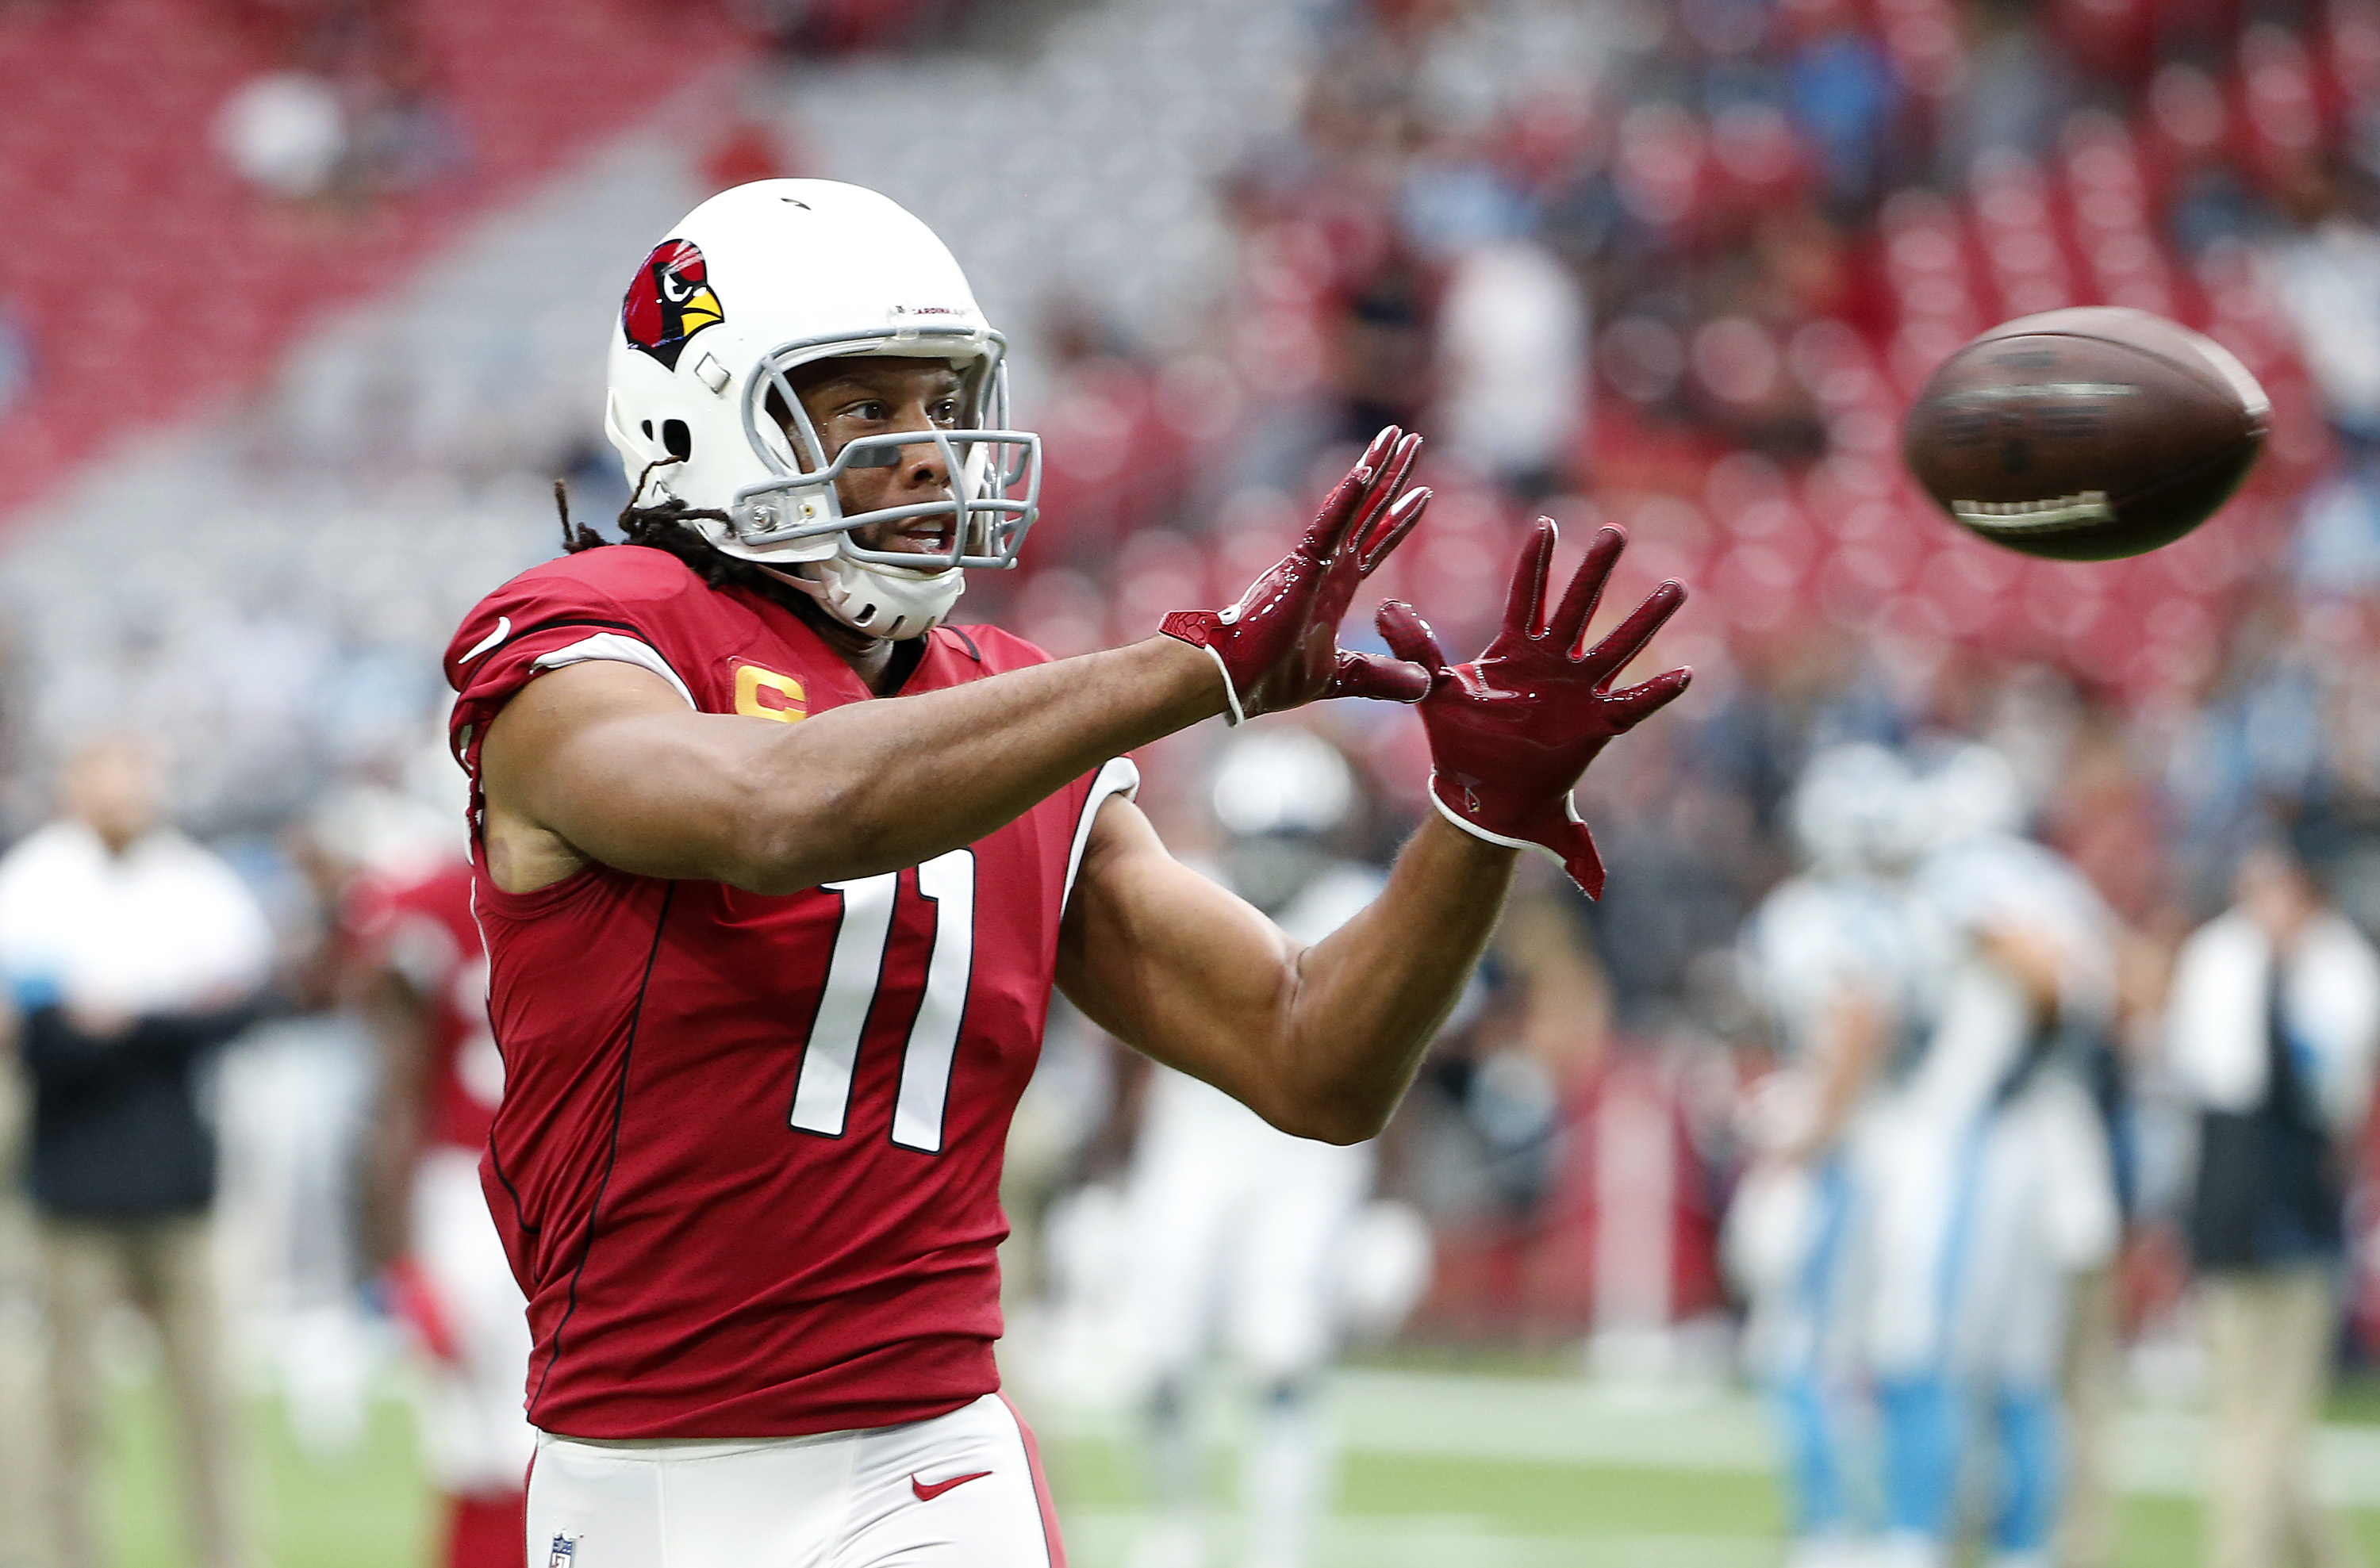 Larry Fitzgerald is an ageless wonder in the NFL. At 36 years old, the Cardinals legend still might have the best hands in the league.